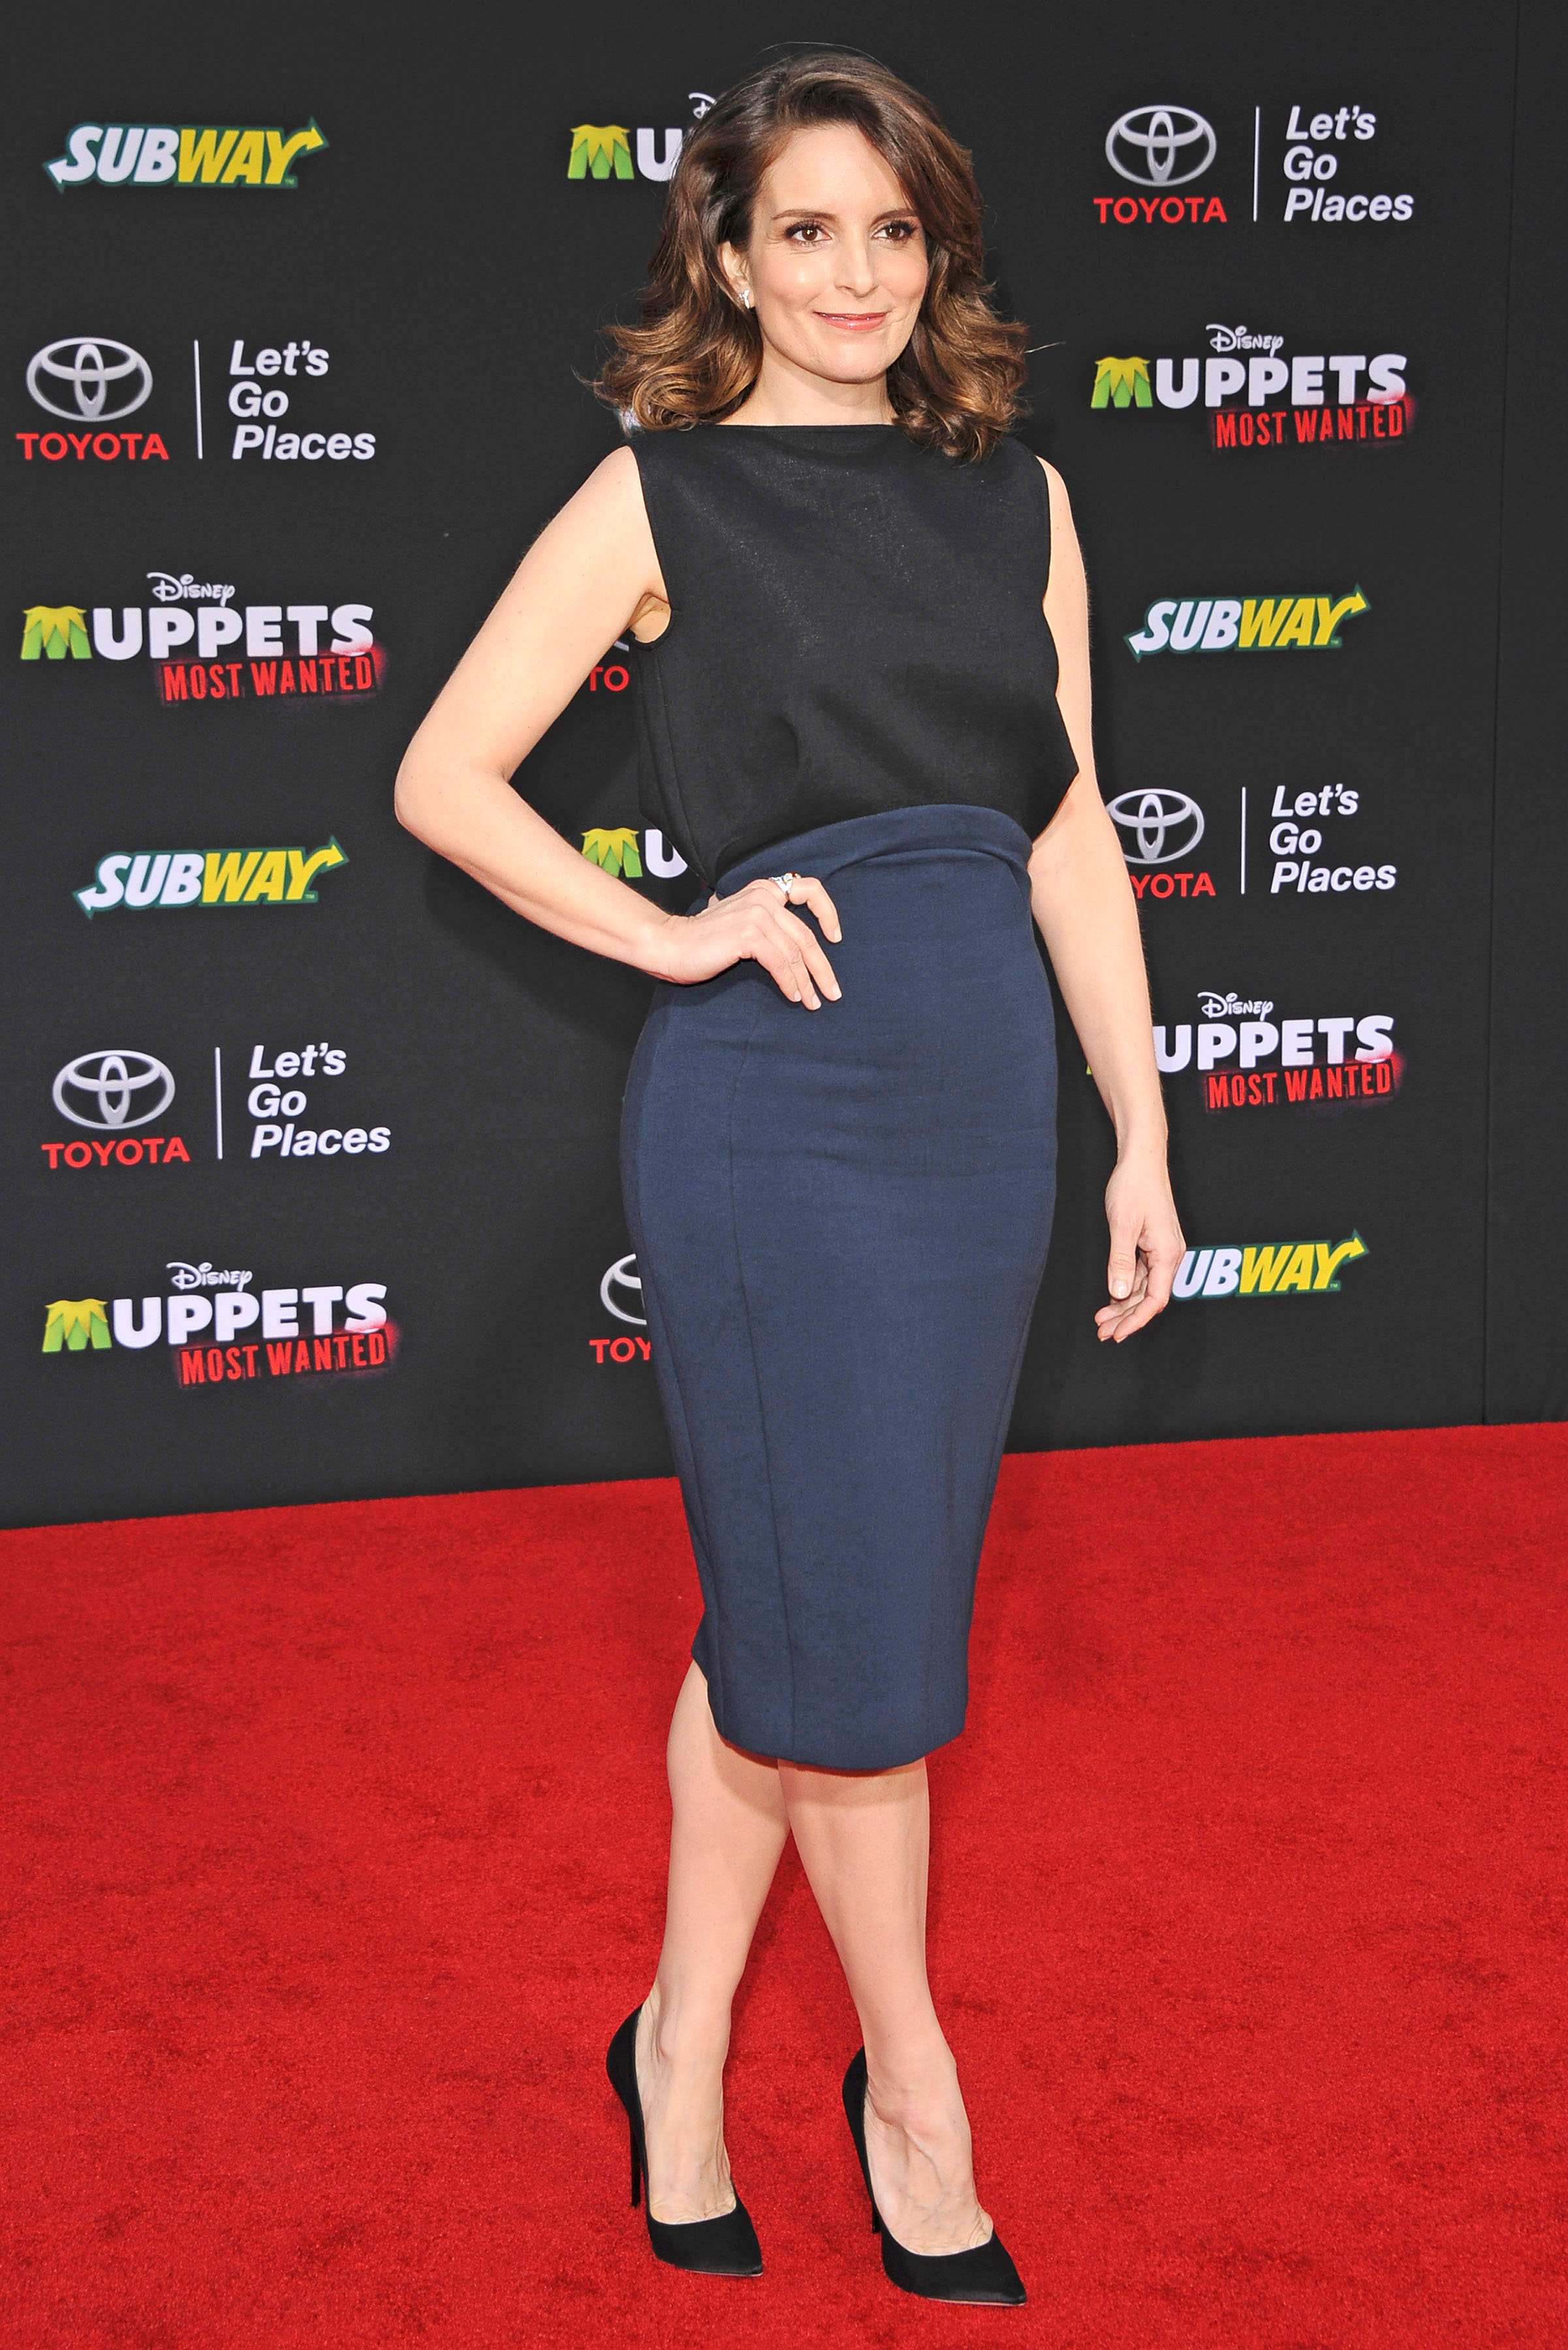 Tina Fey arrives at the Los Angeles premiere of 'Muppets Most Wanted' at the El Capitan Theatre on March 11, 2014 in Hollywood.